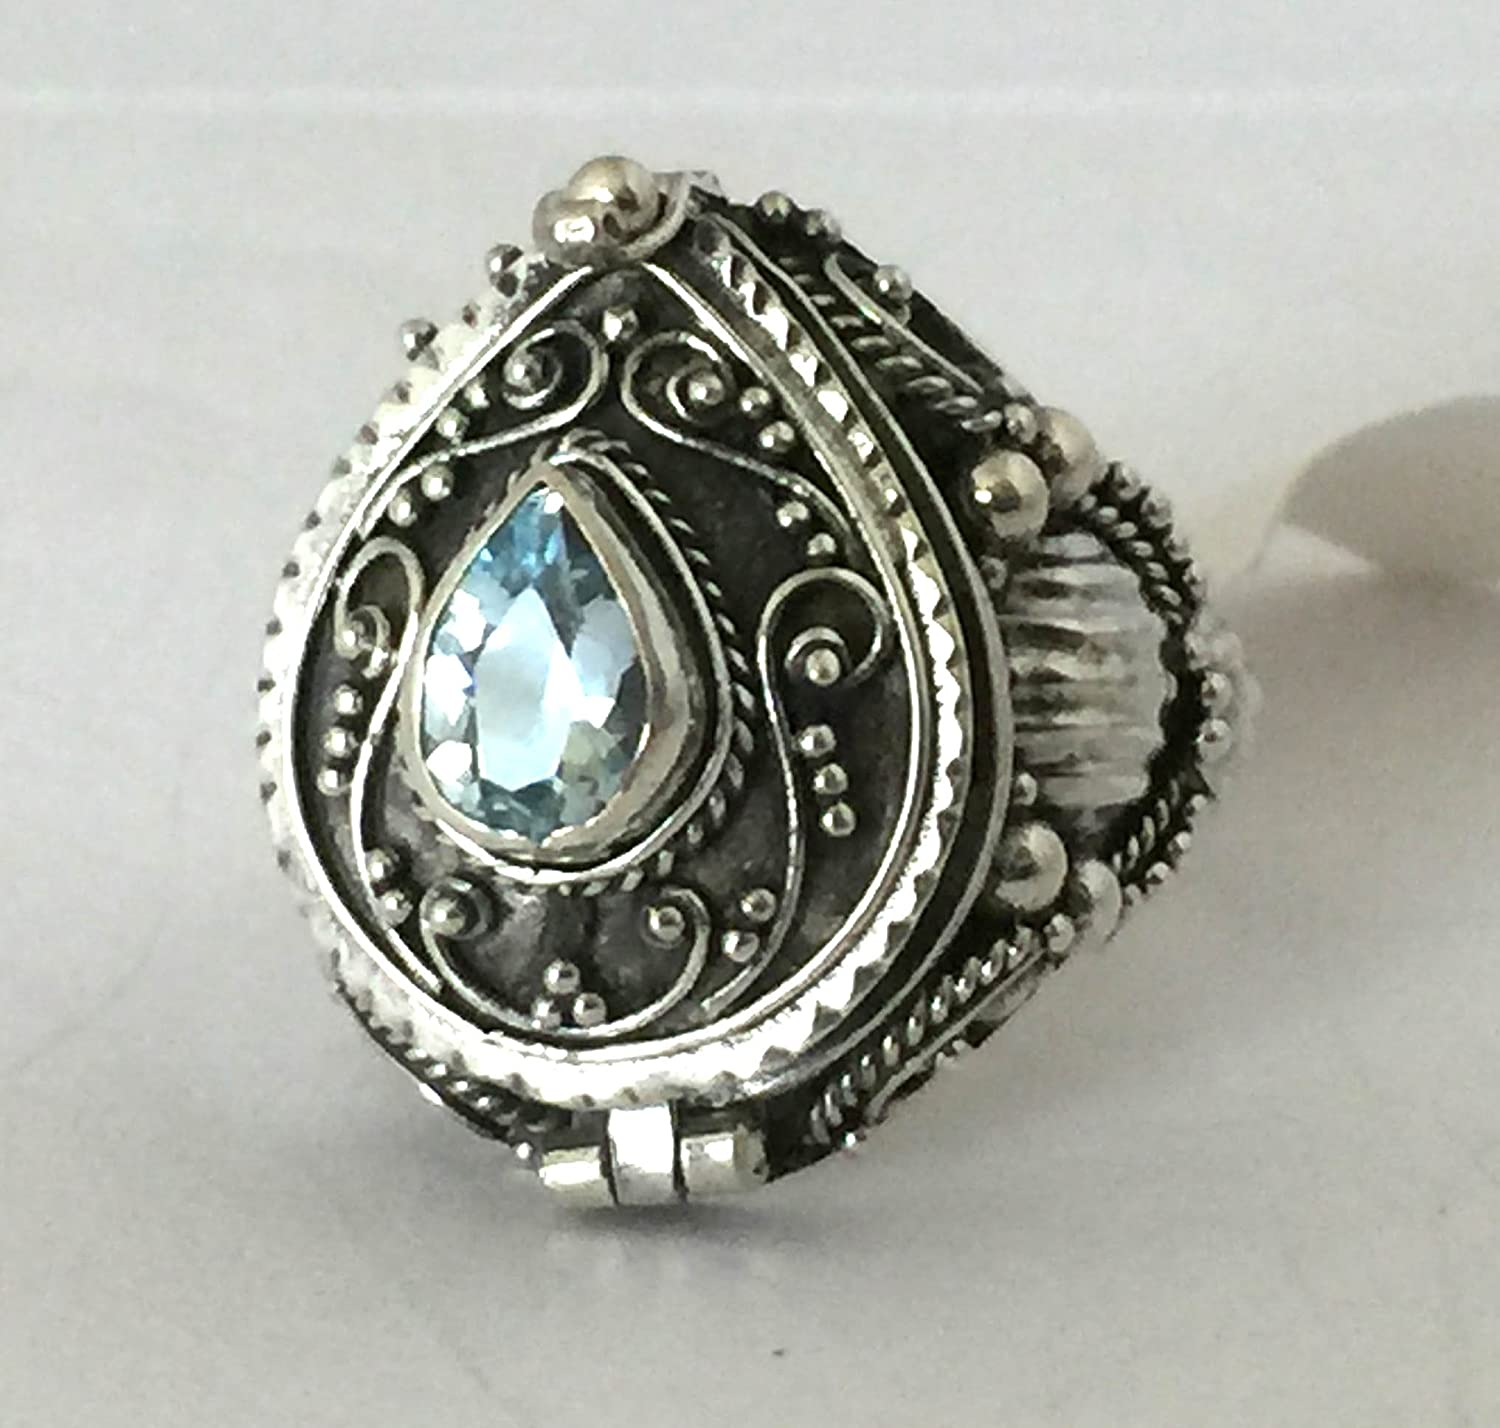 Sky Blue Topaz Tear drop Poison Ring Locket Sterling Silver Secret Compartment